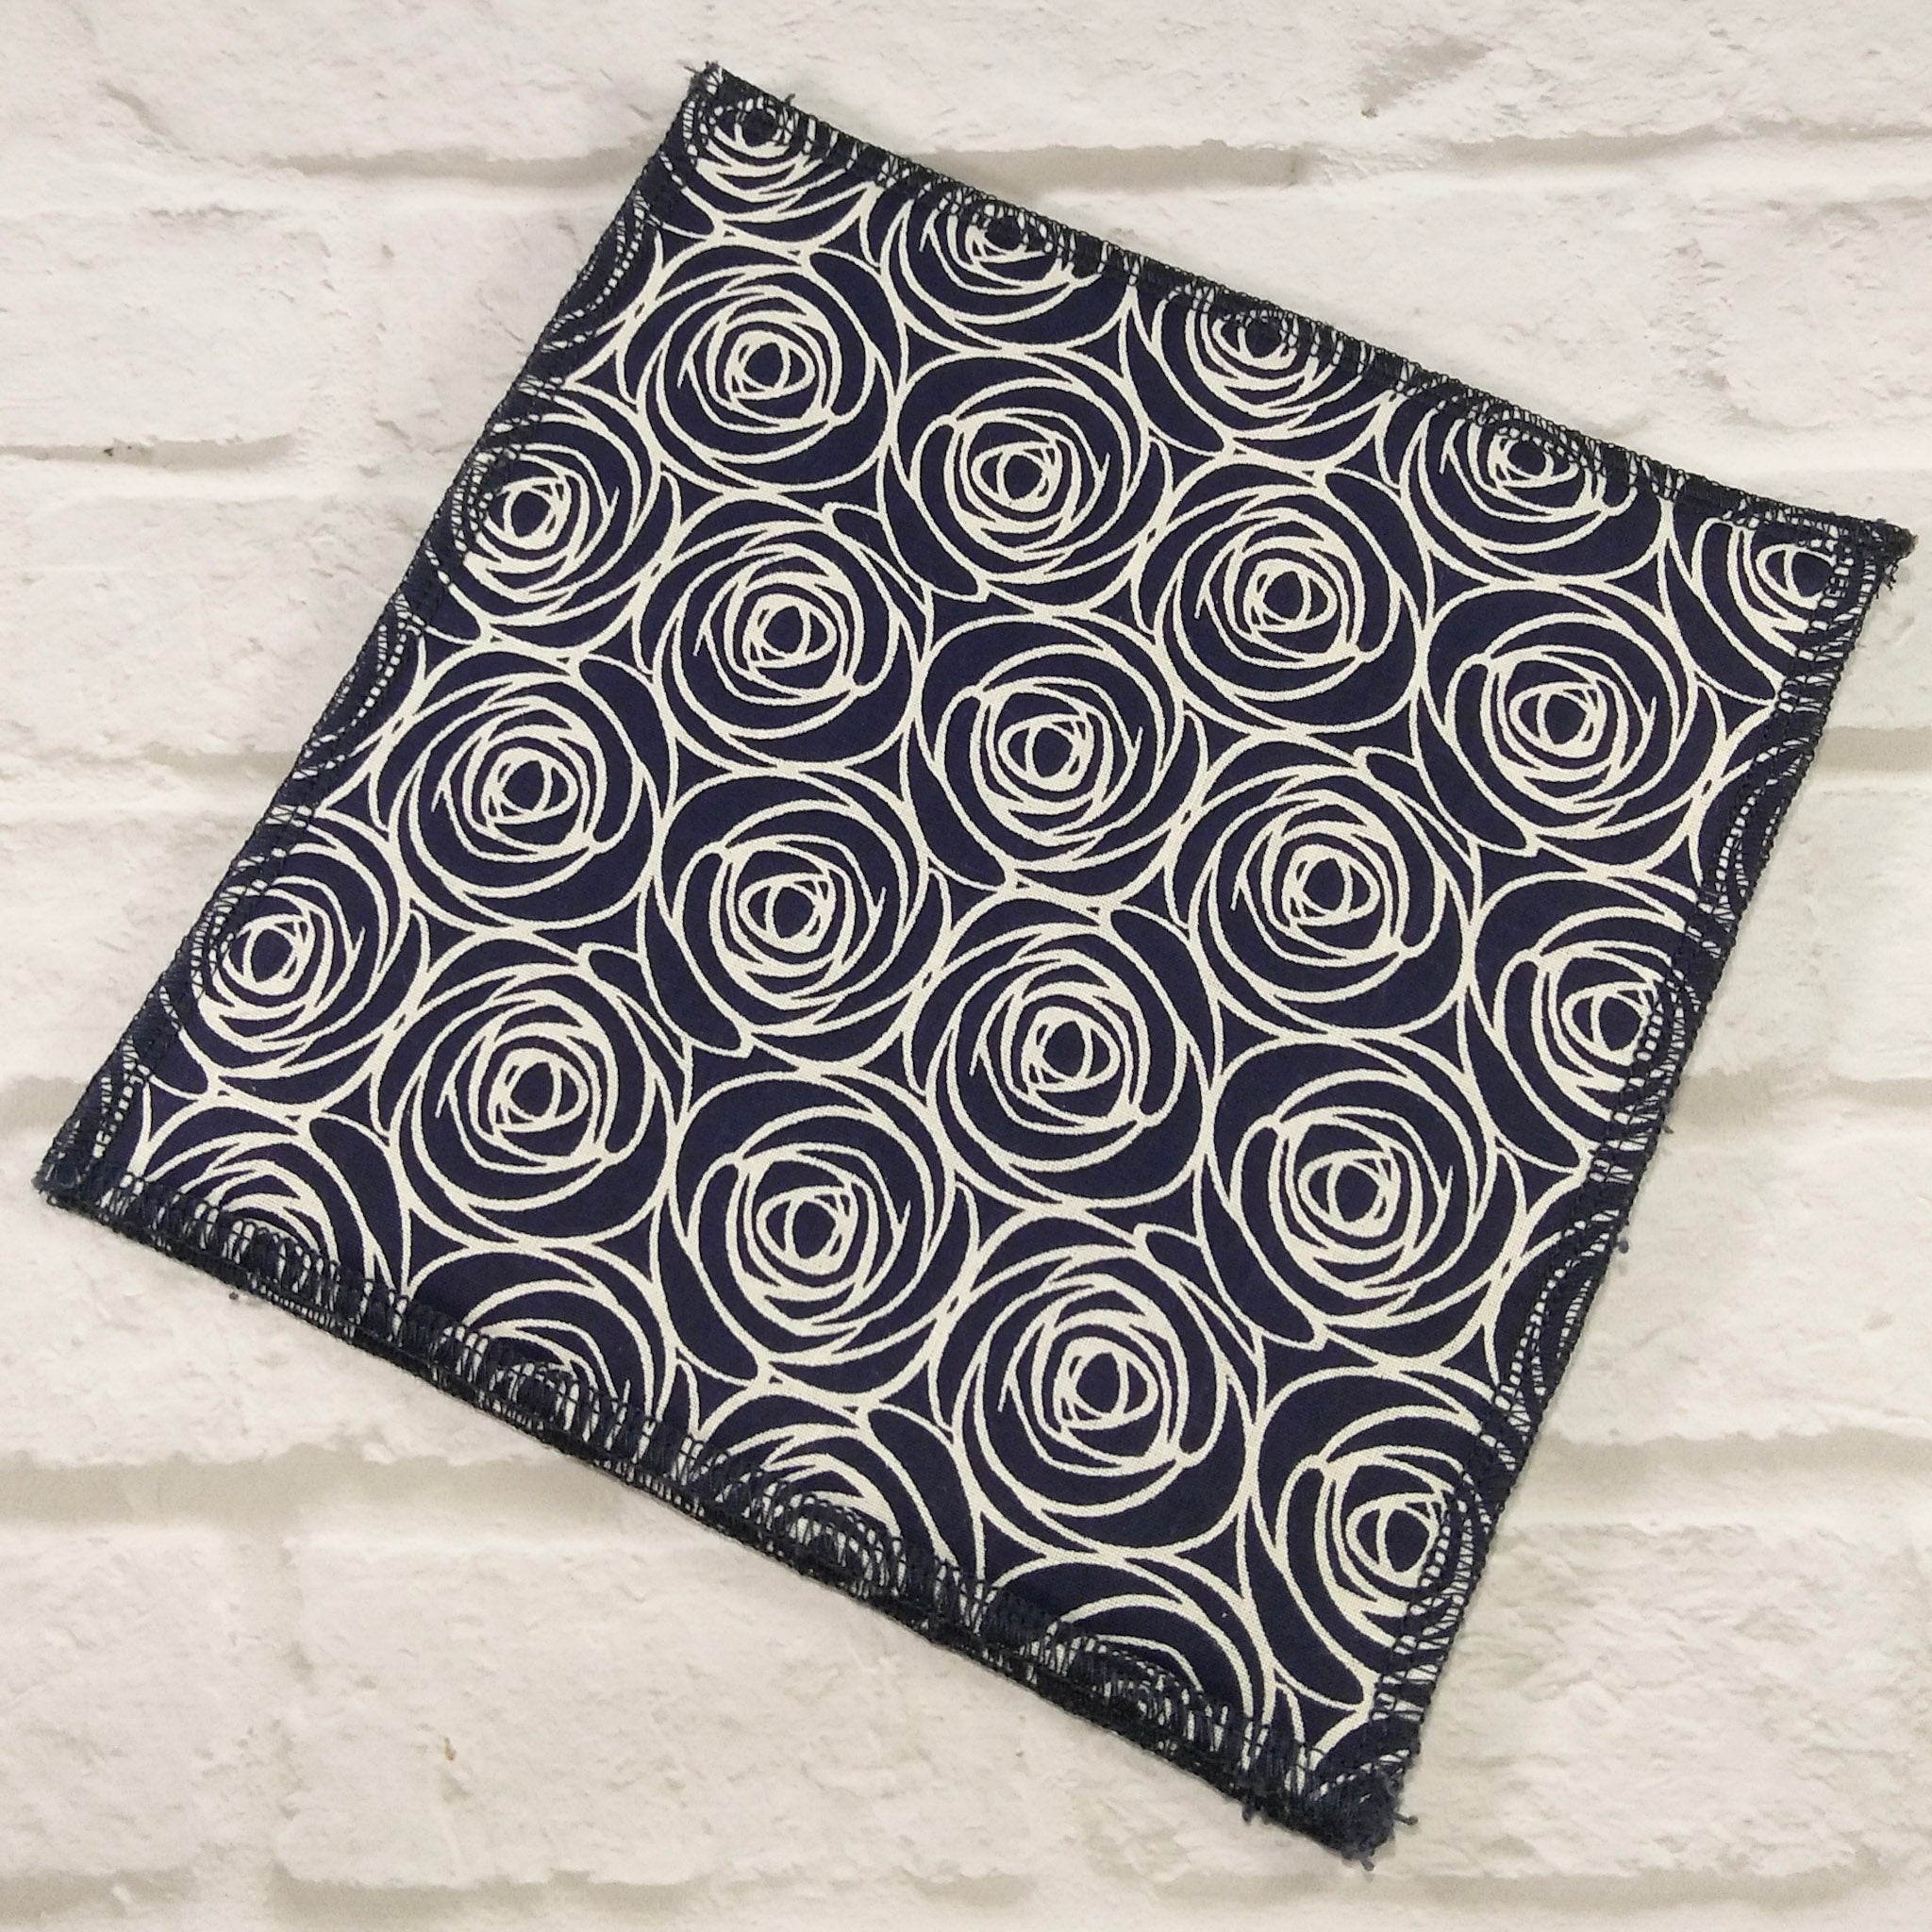 Dishcloths by Nature's Reusables ● Navy Rose Cleaning and Laundry Nature's Reusables - Mandala Sol